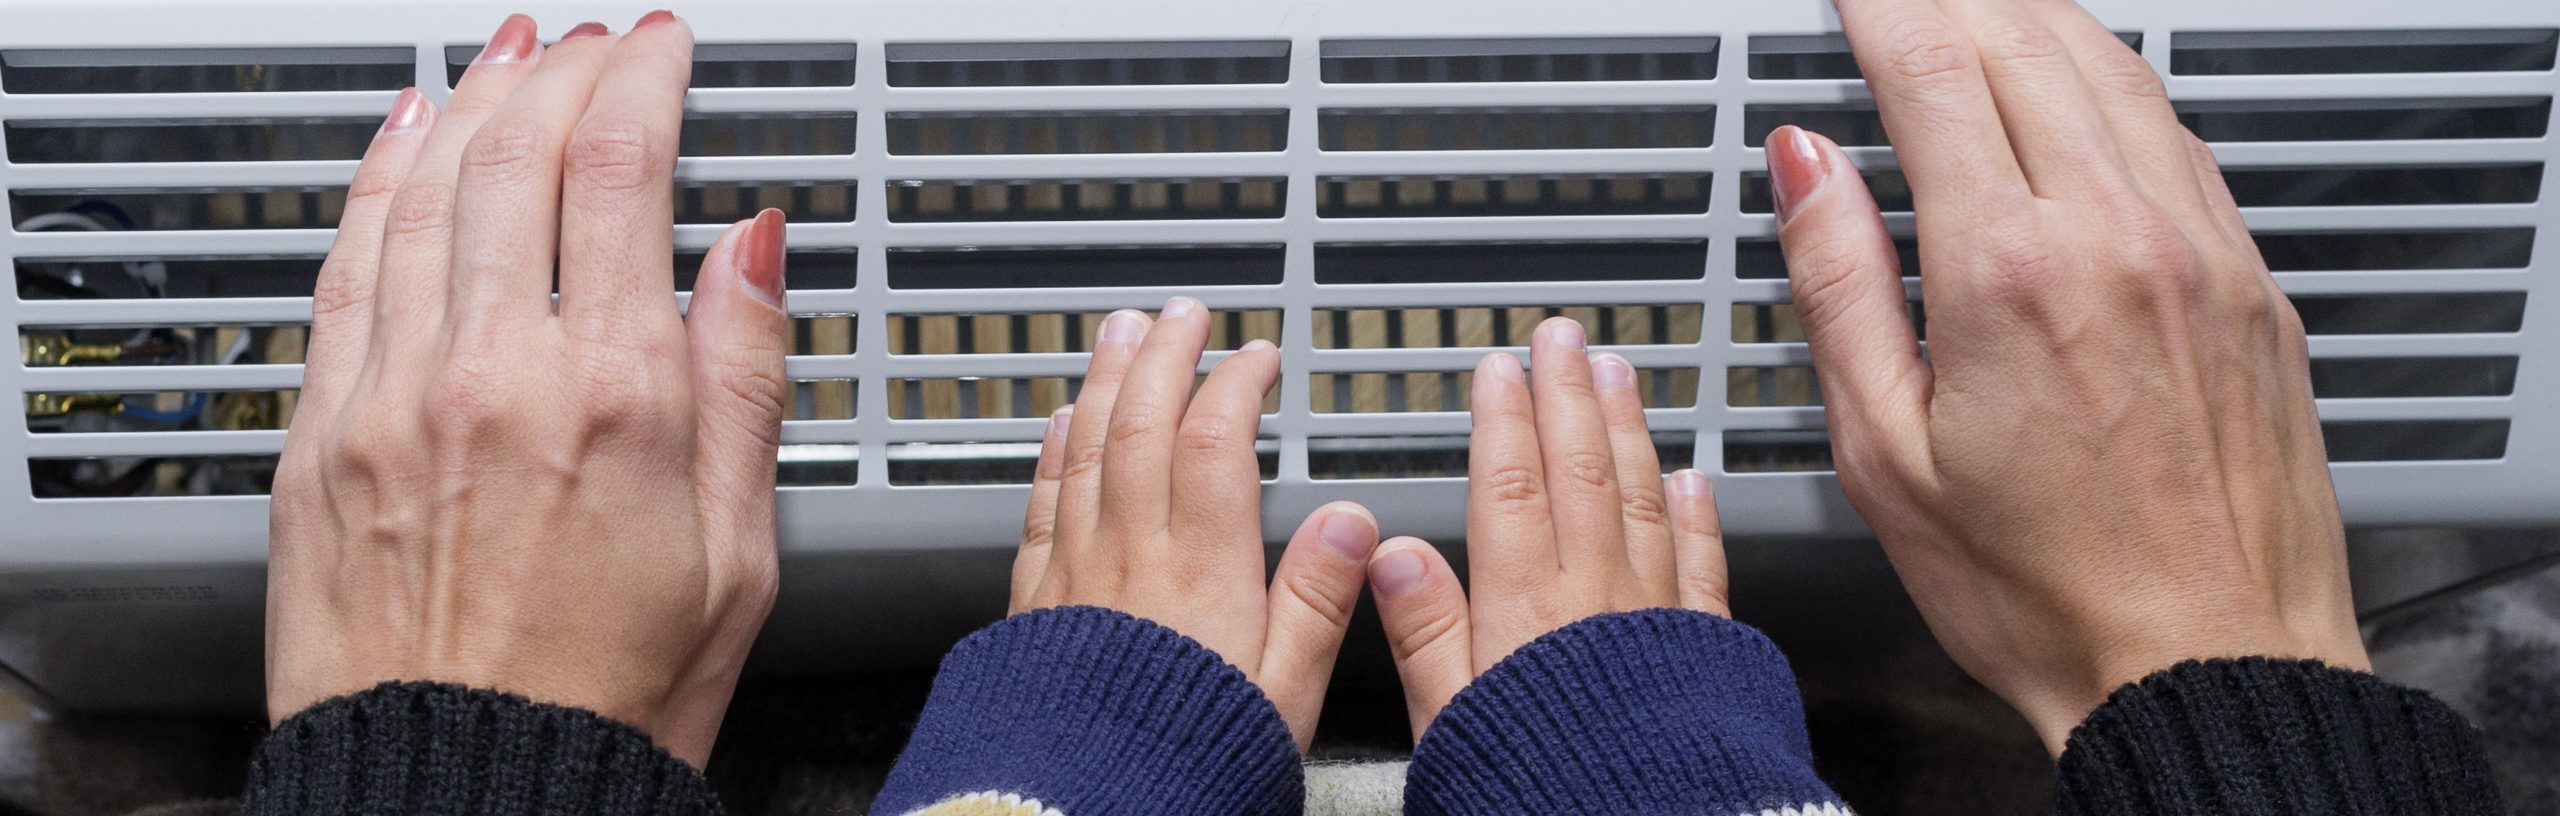 Blog: Heat as a service: evidence needs and research gaps